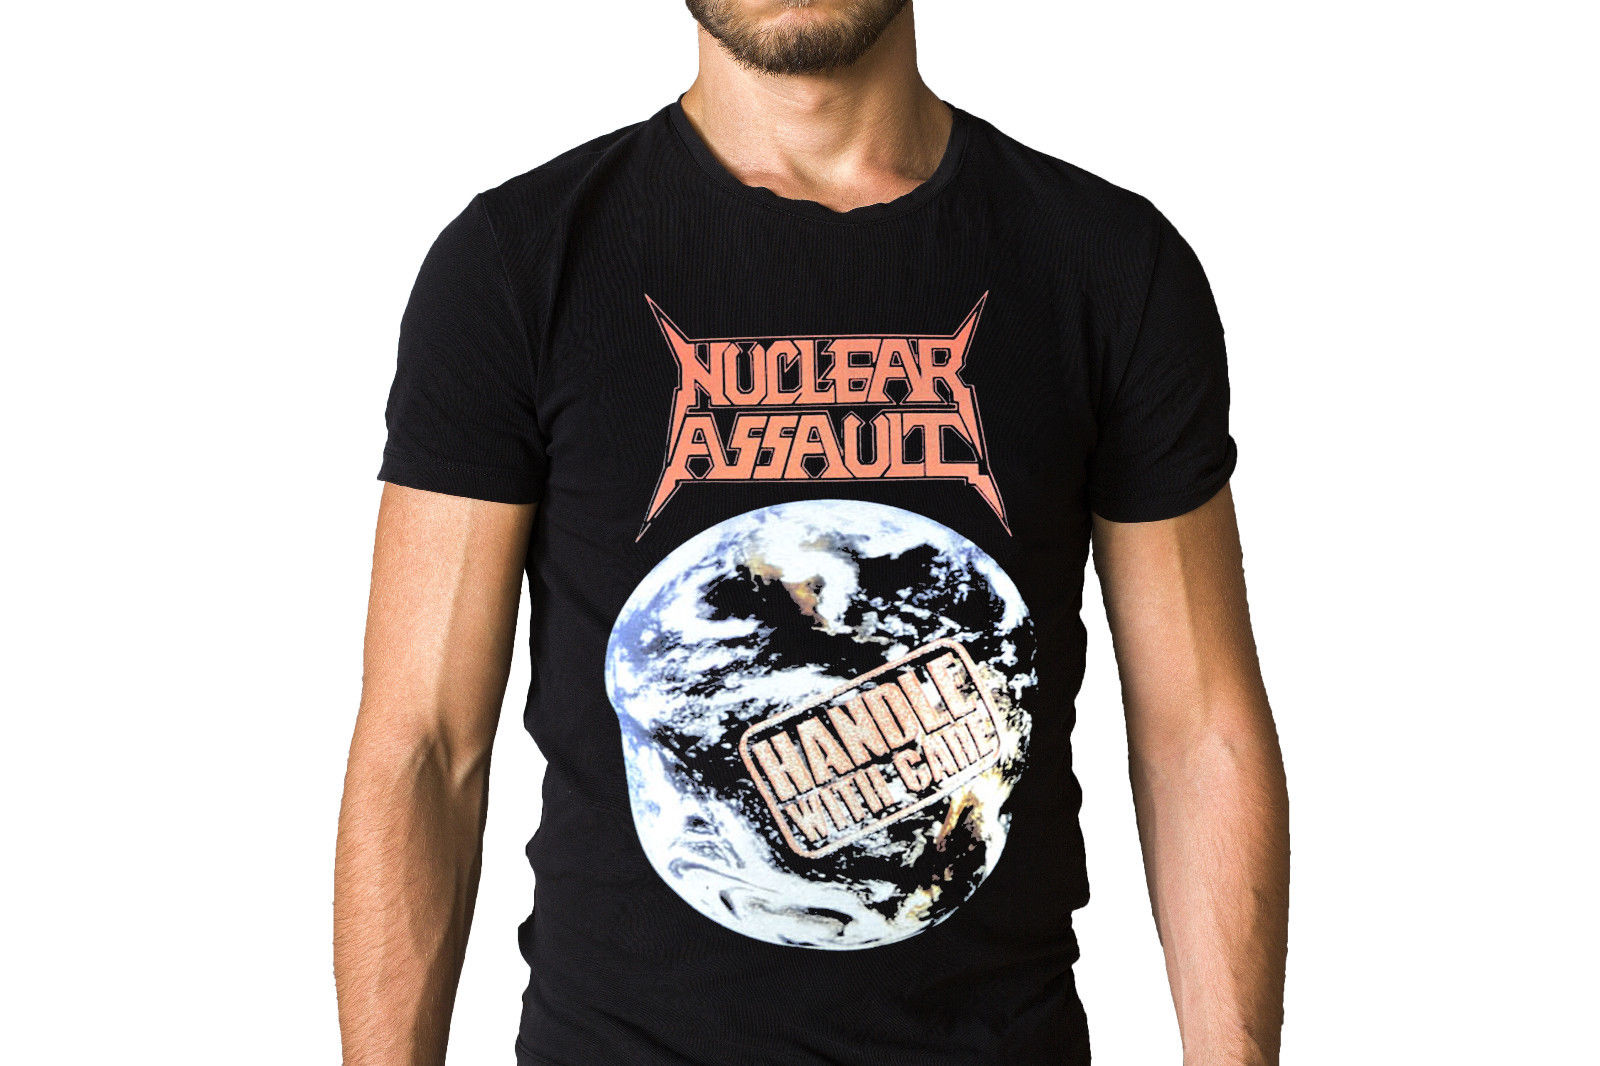 Nuclear Assault Handle with Care 1989 Earth Album Cover T-Shirt Short Sleeve T Shirt Free Shipping Tops Tees Printed Men